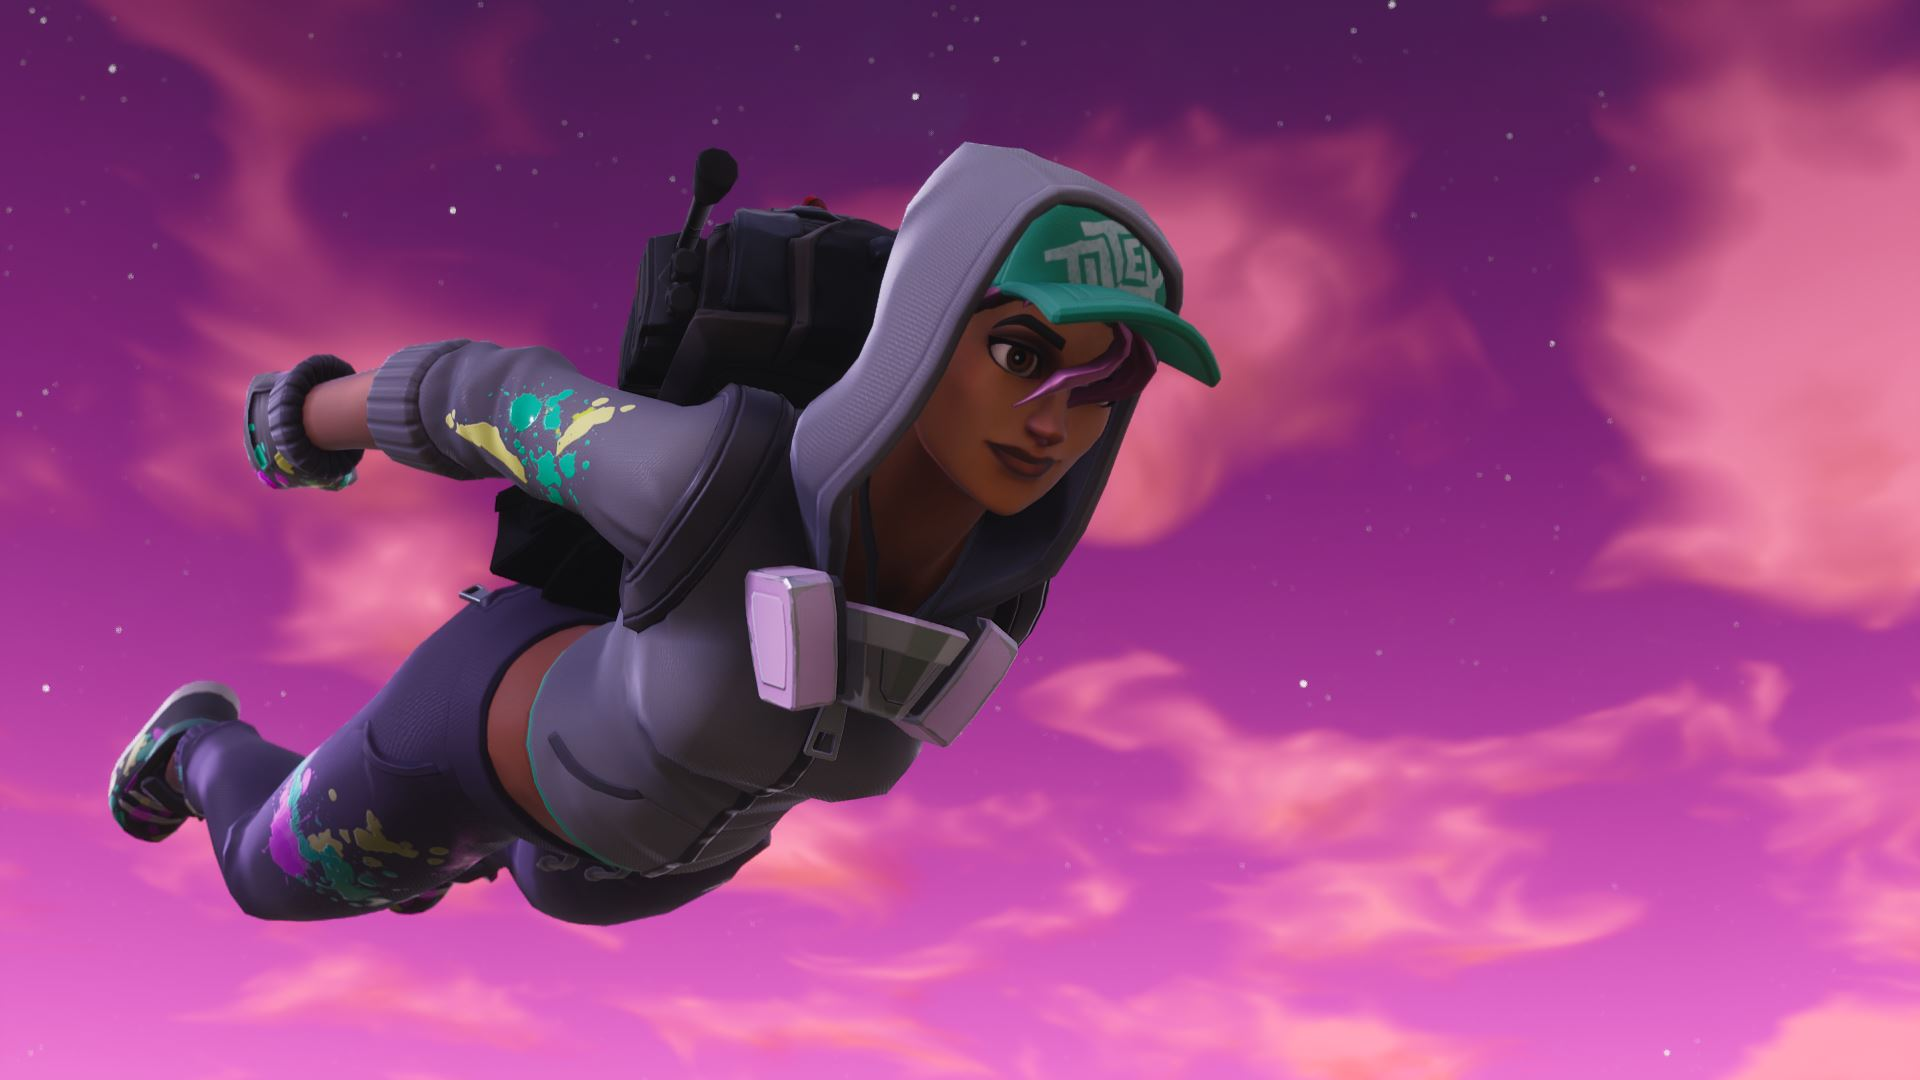 Fortnite S Jetpacks Where To Find Them And How They Work Pc Gamer Jetpacks is a professional fortnite player for become legends. pc gamer